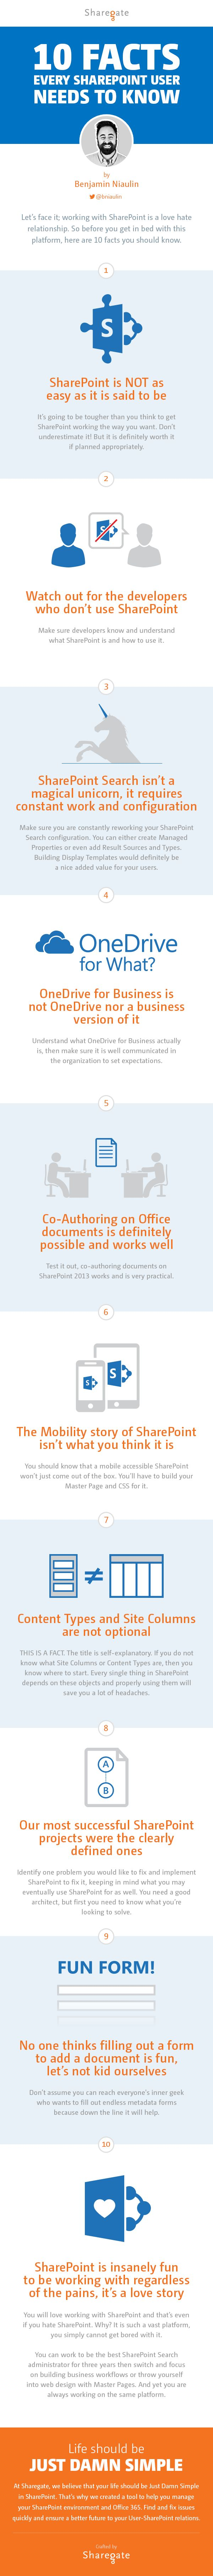 10 Facts Every SharePoint User needs to know [Infographic]